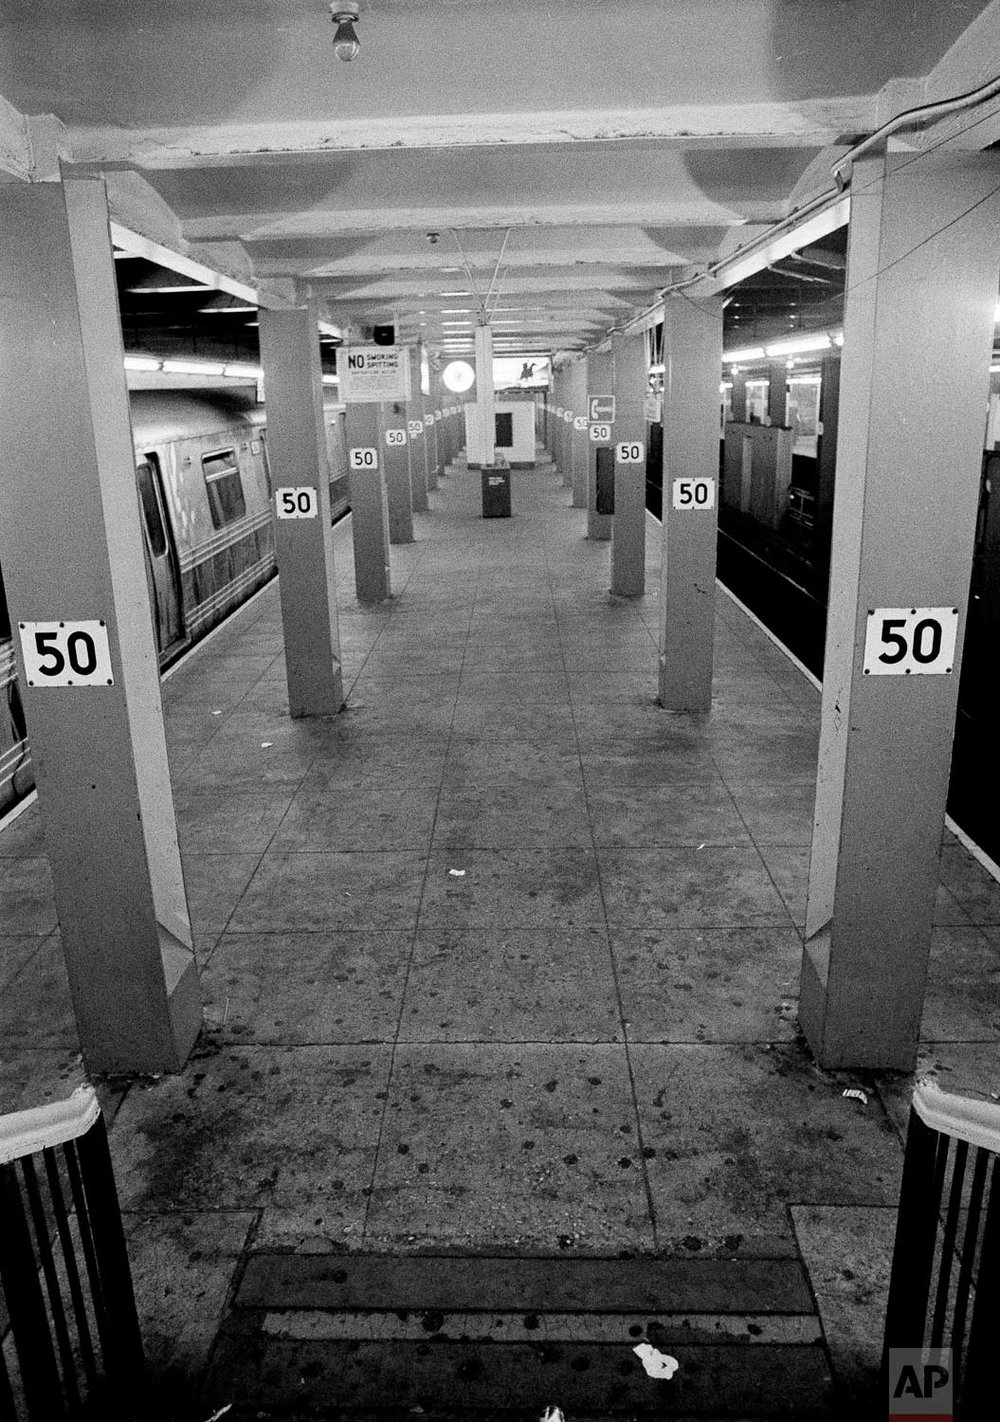 The subway platform at 50th Street under Rockefeller Center was empty of travelers at 5 P.M., July 14, 1977, when it would normally be jammed with rush hour commuters. Subway service in New York City was only partially restored by 5:30 P.M. in the aftermath of the massive power failure which hit the city last night, July 13. (AP Photo/Suzanne Vlamis)